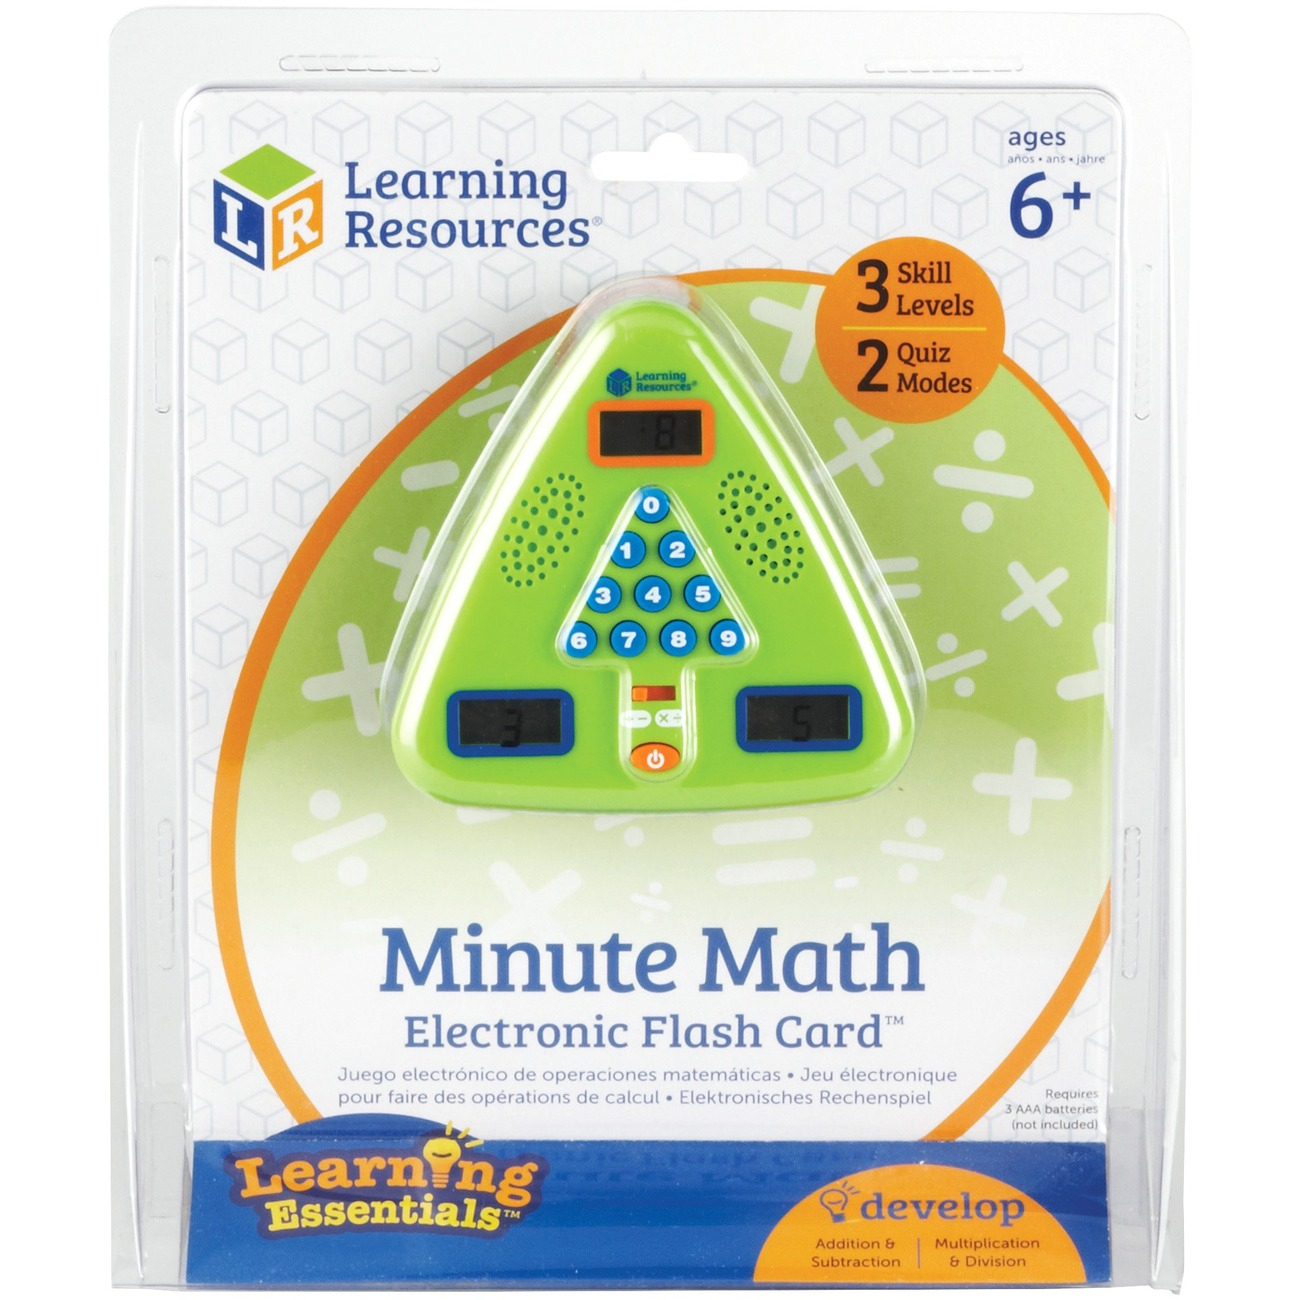 Learning Resources Minute Math Electronic Flash Card - Skill Learning:  Equation Solving, Visual Processing, Audio Feedback, Addition, Subtraction,